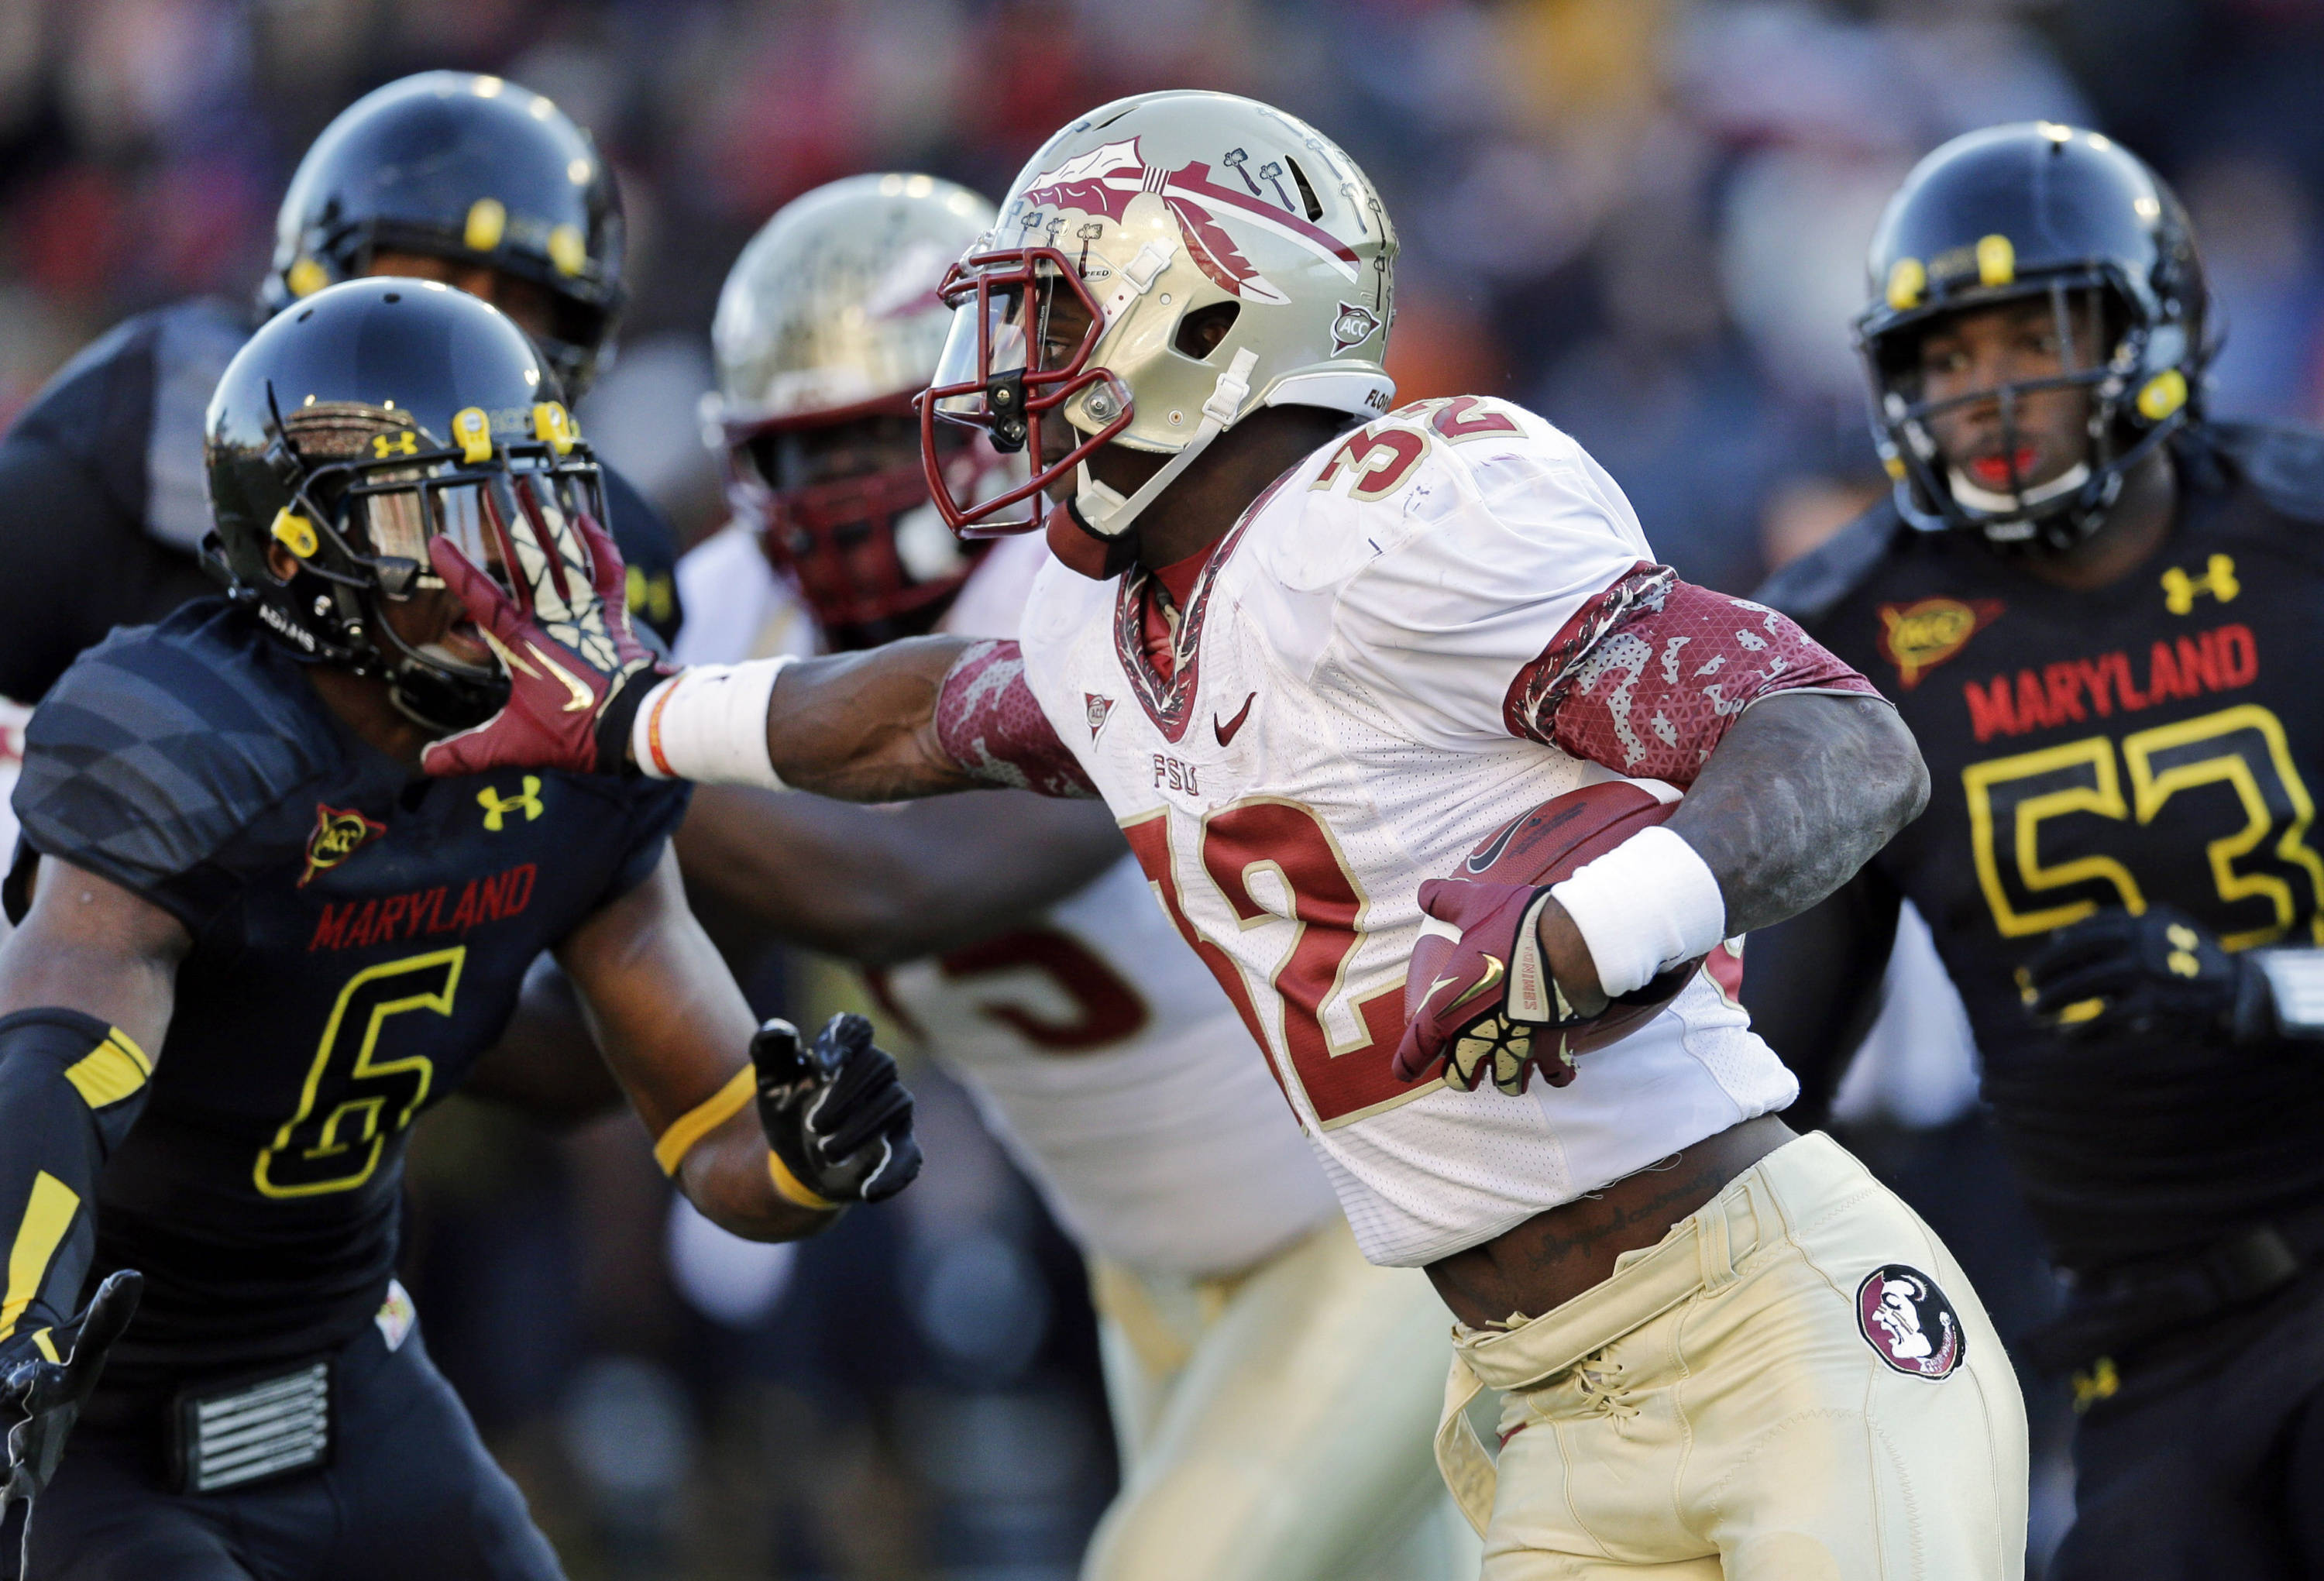 Running back James Wilder, Jr., center, rushes past Maryland linebackers Kenneth Tate (6) and L.A. Goree (53) in the second half of an NCAA college football game in College Park, Md., Saturday, Nov. 17, 2012. Florida State won 41-14. (AP Photo/Patrick Semansky)